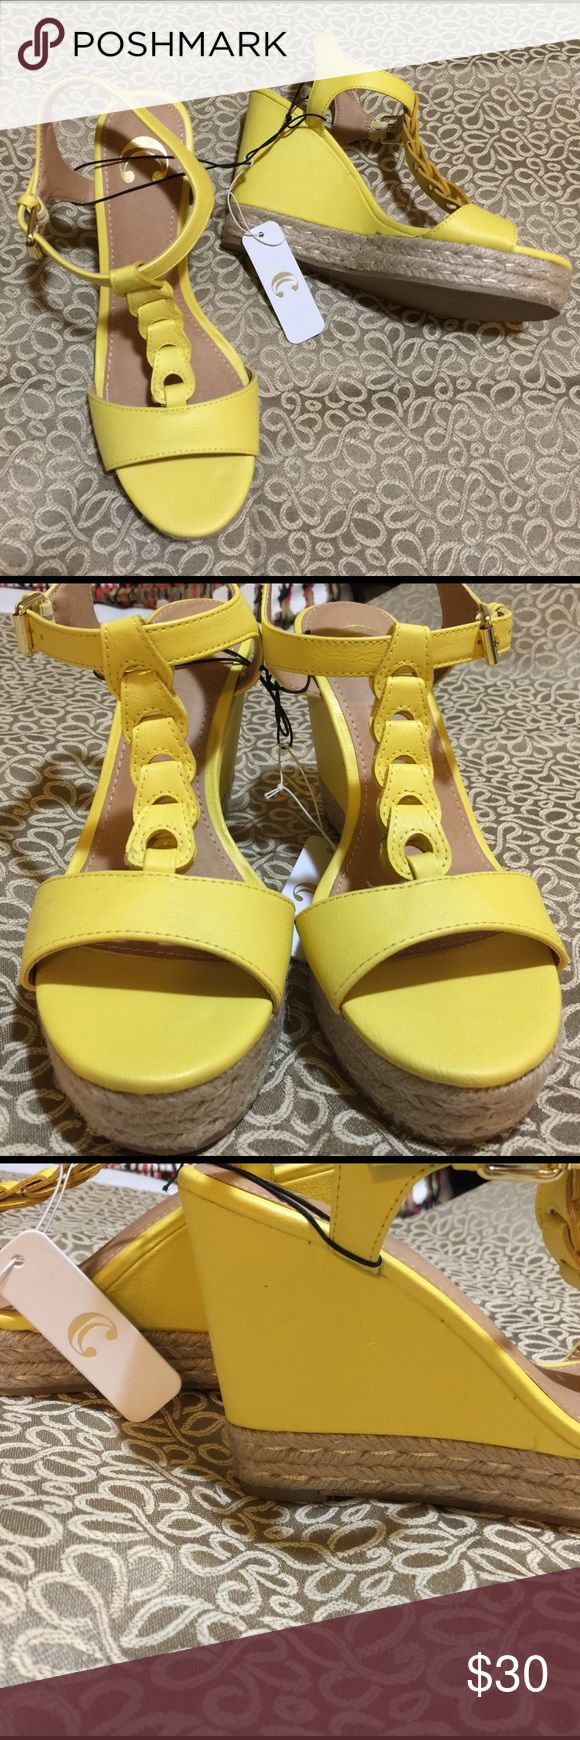 "Yellow espadrille wedges size 7 Get ready for spring in these great espadrilles!!!  Bright yellow with ankle T strap. 4"" wedge with a 1"" platform. Never worn still have tags attached. Not sure of the brand, they just have a letter C inside. All man made materials. C Shoes Espadrilles"